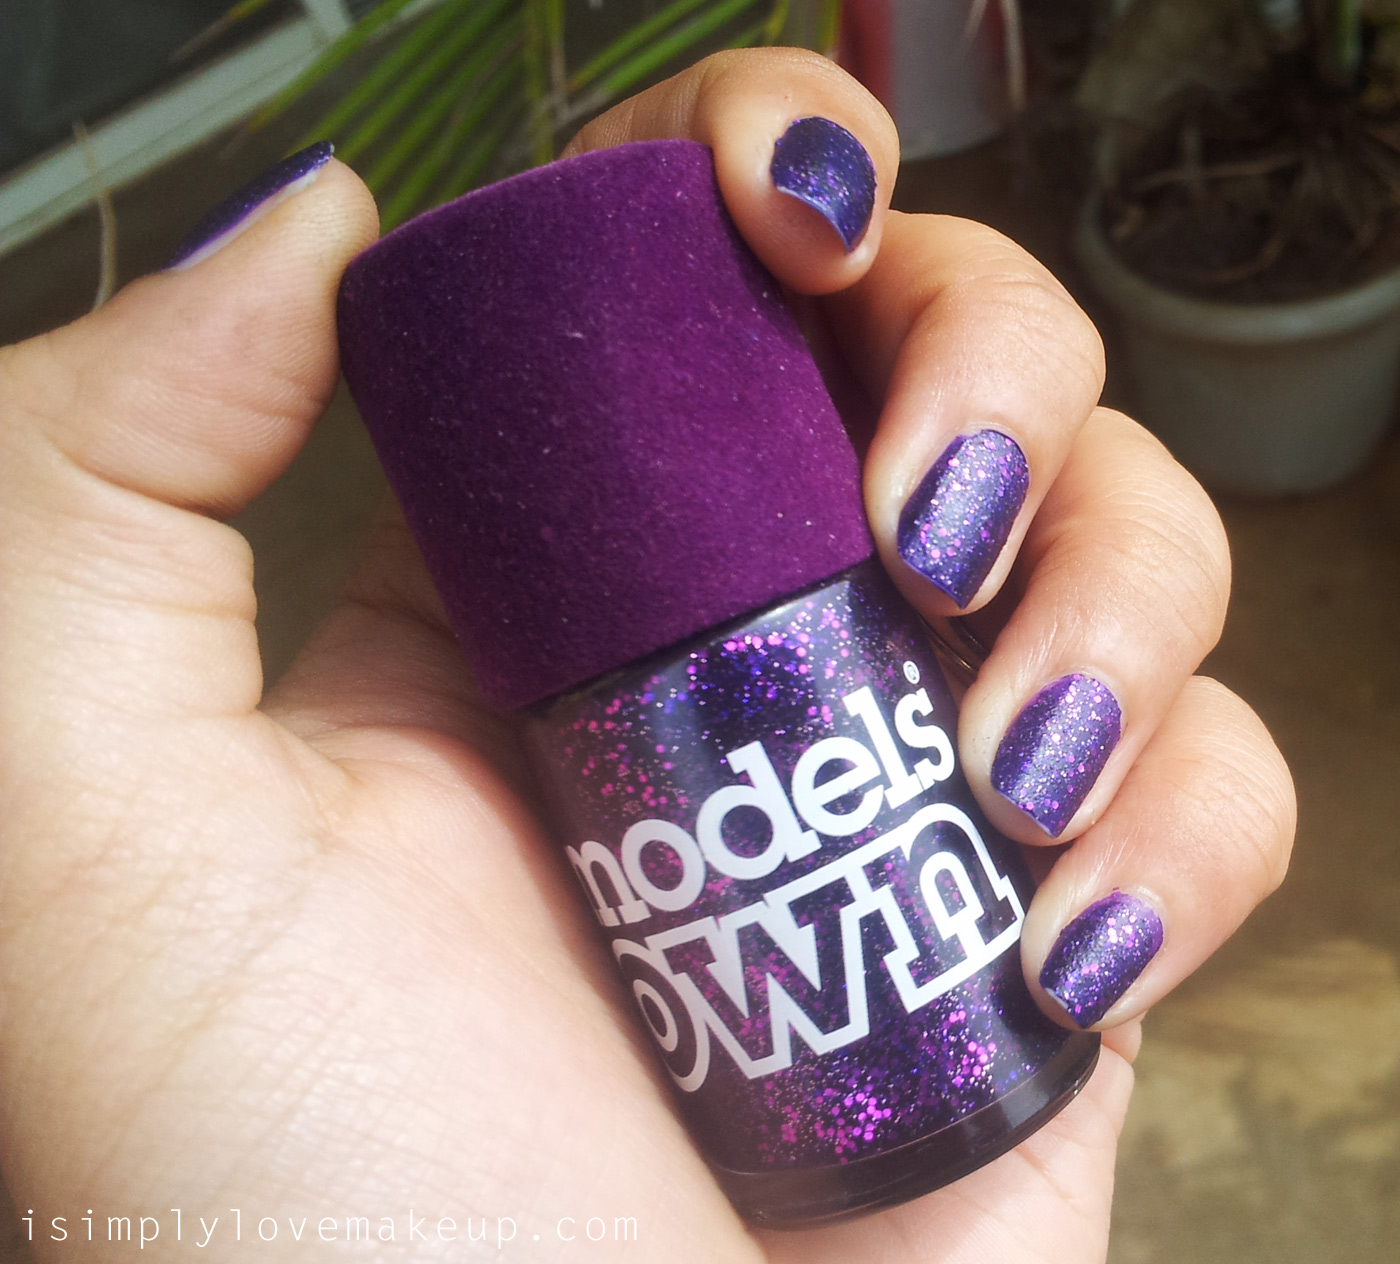 REVIEW: Models Own Glitter Nail Polish in Amethyst